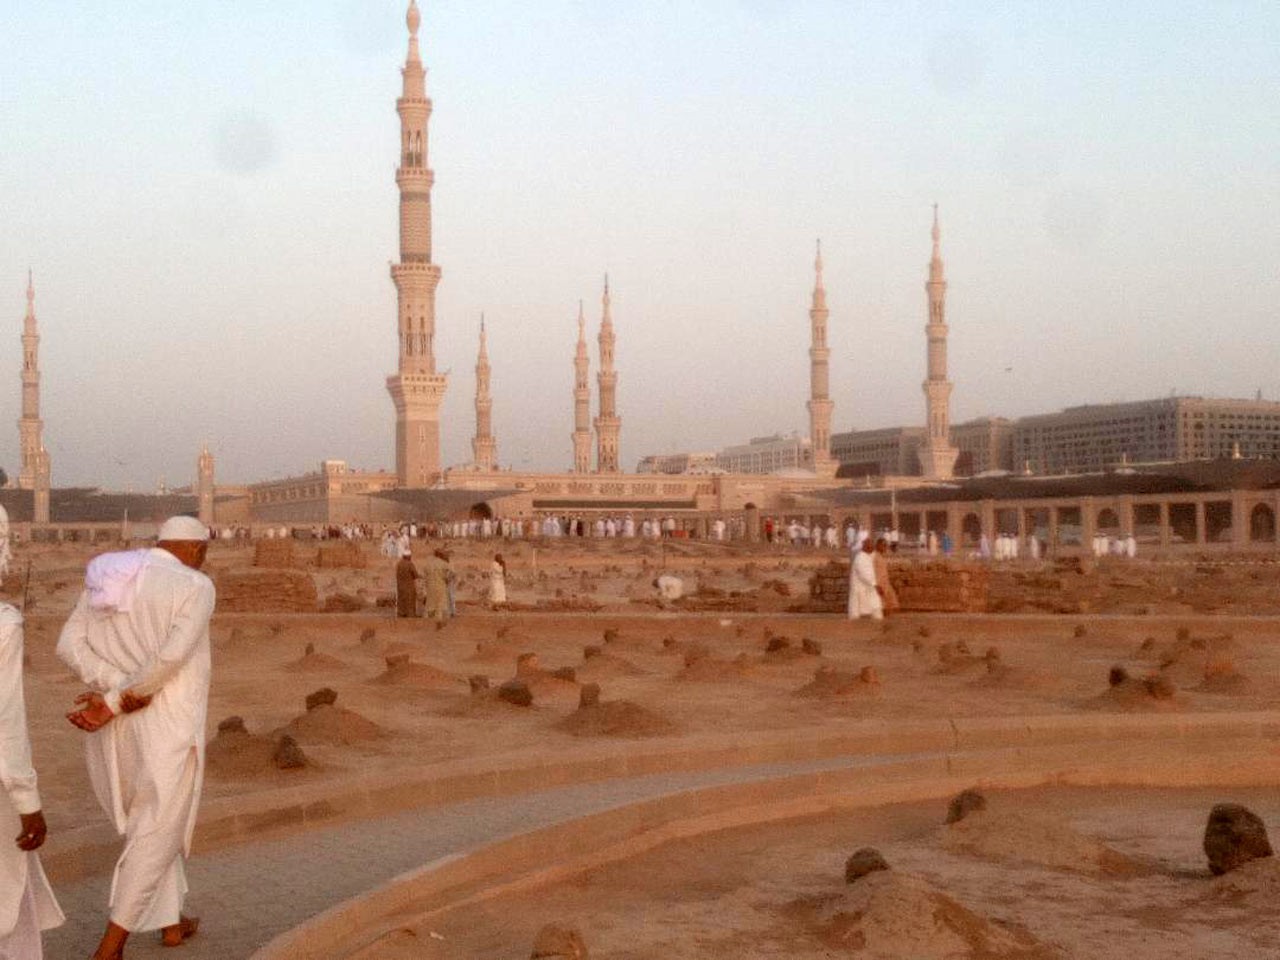 A nice view of Jannat Ul Baqi as Masjid-e-Nabwi is in the background